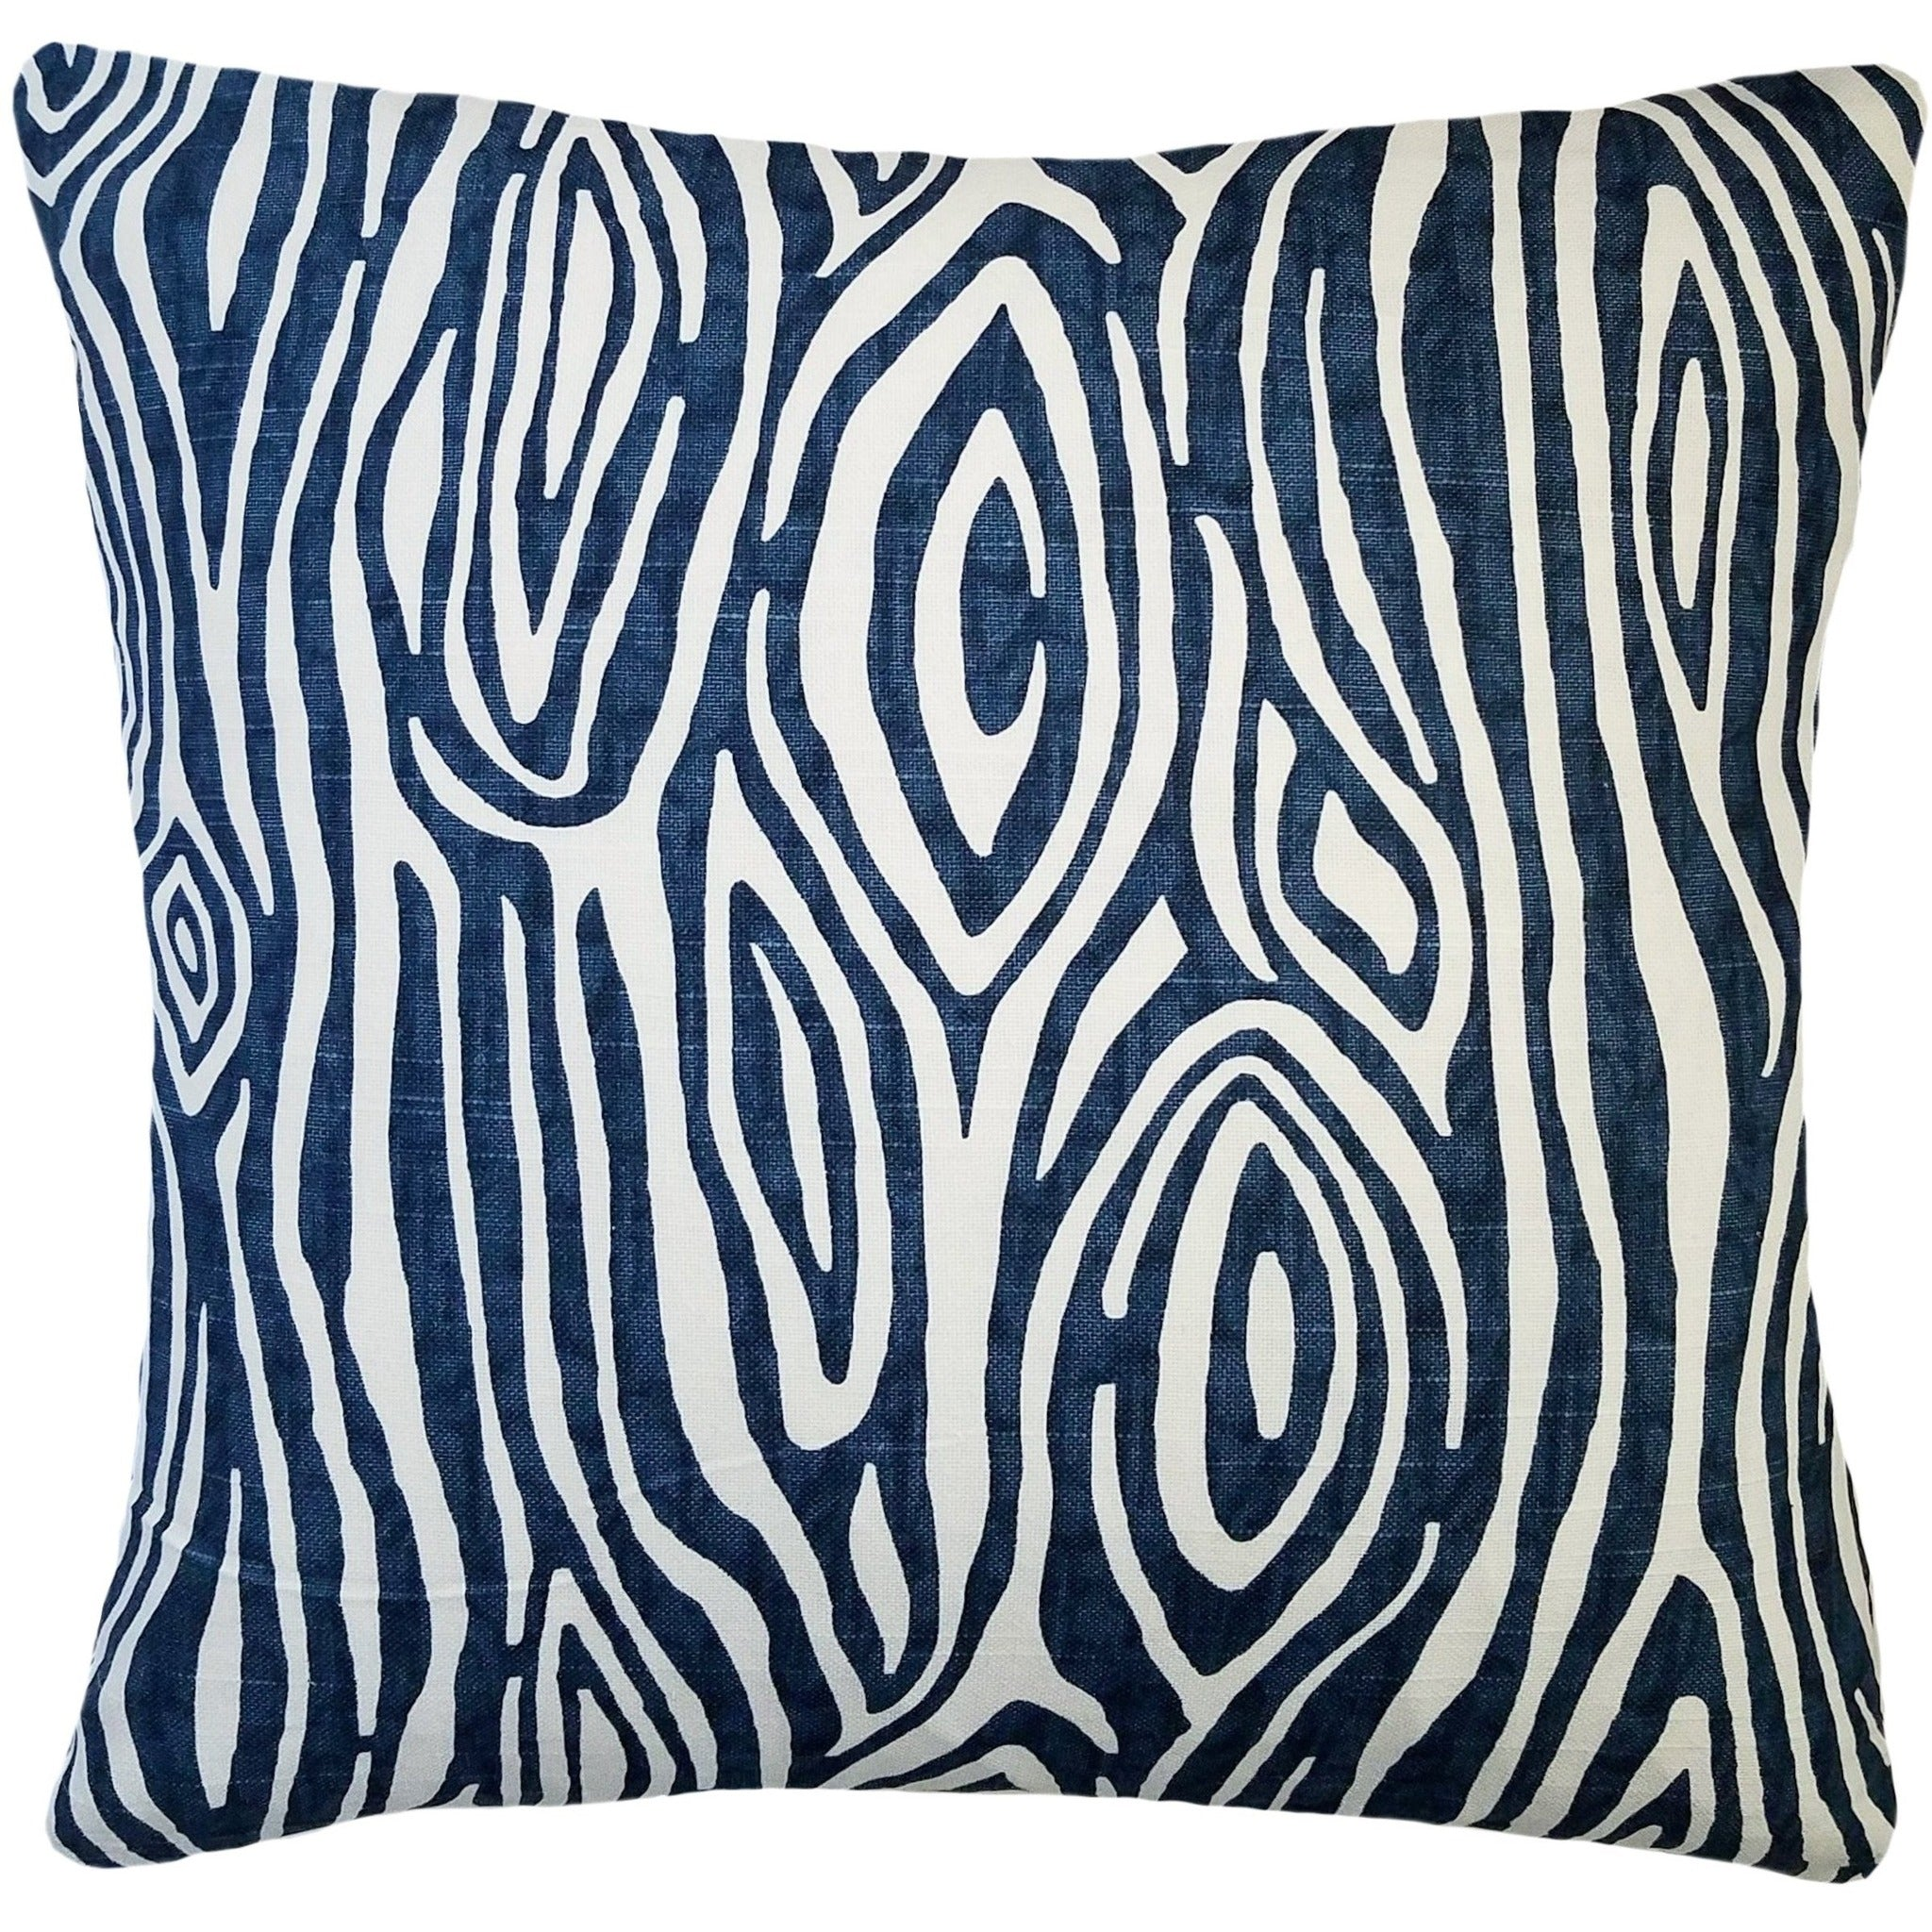 Navy Blue Wood Grain Pillow